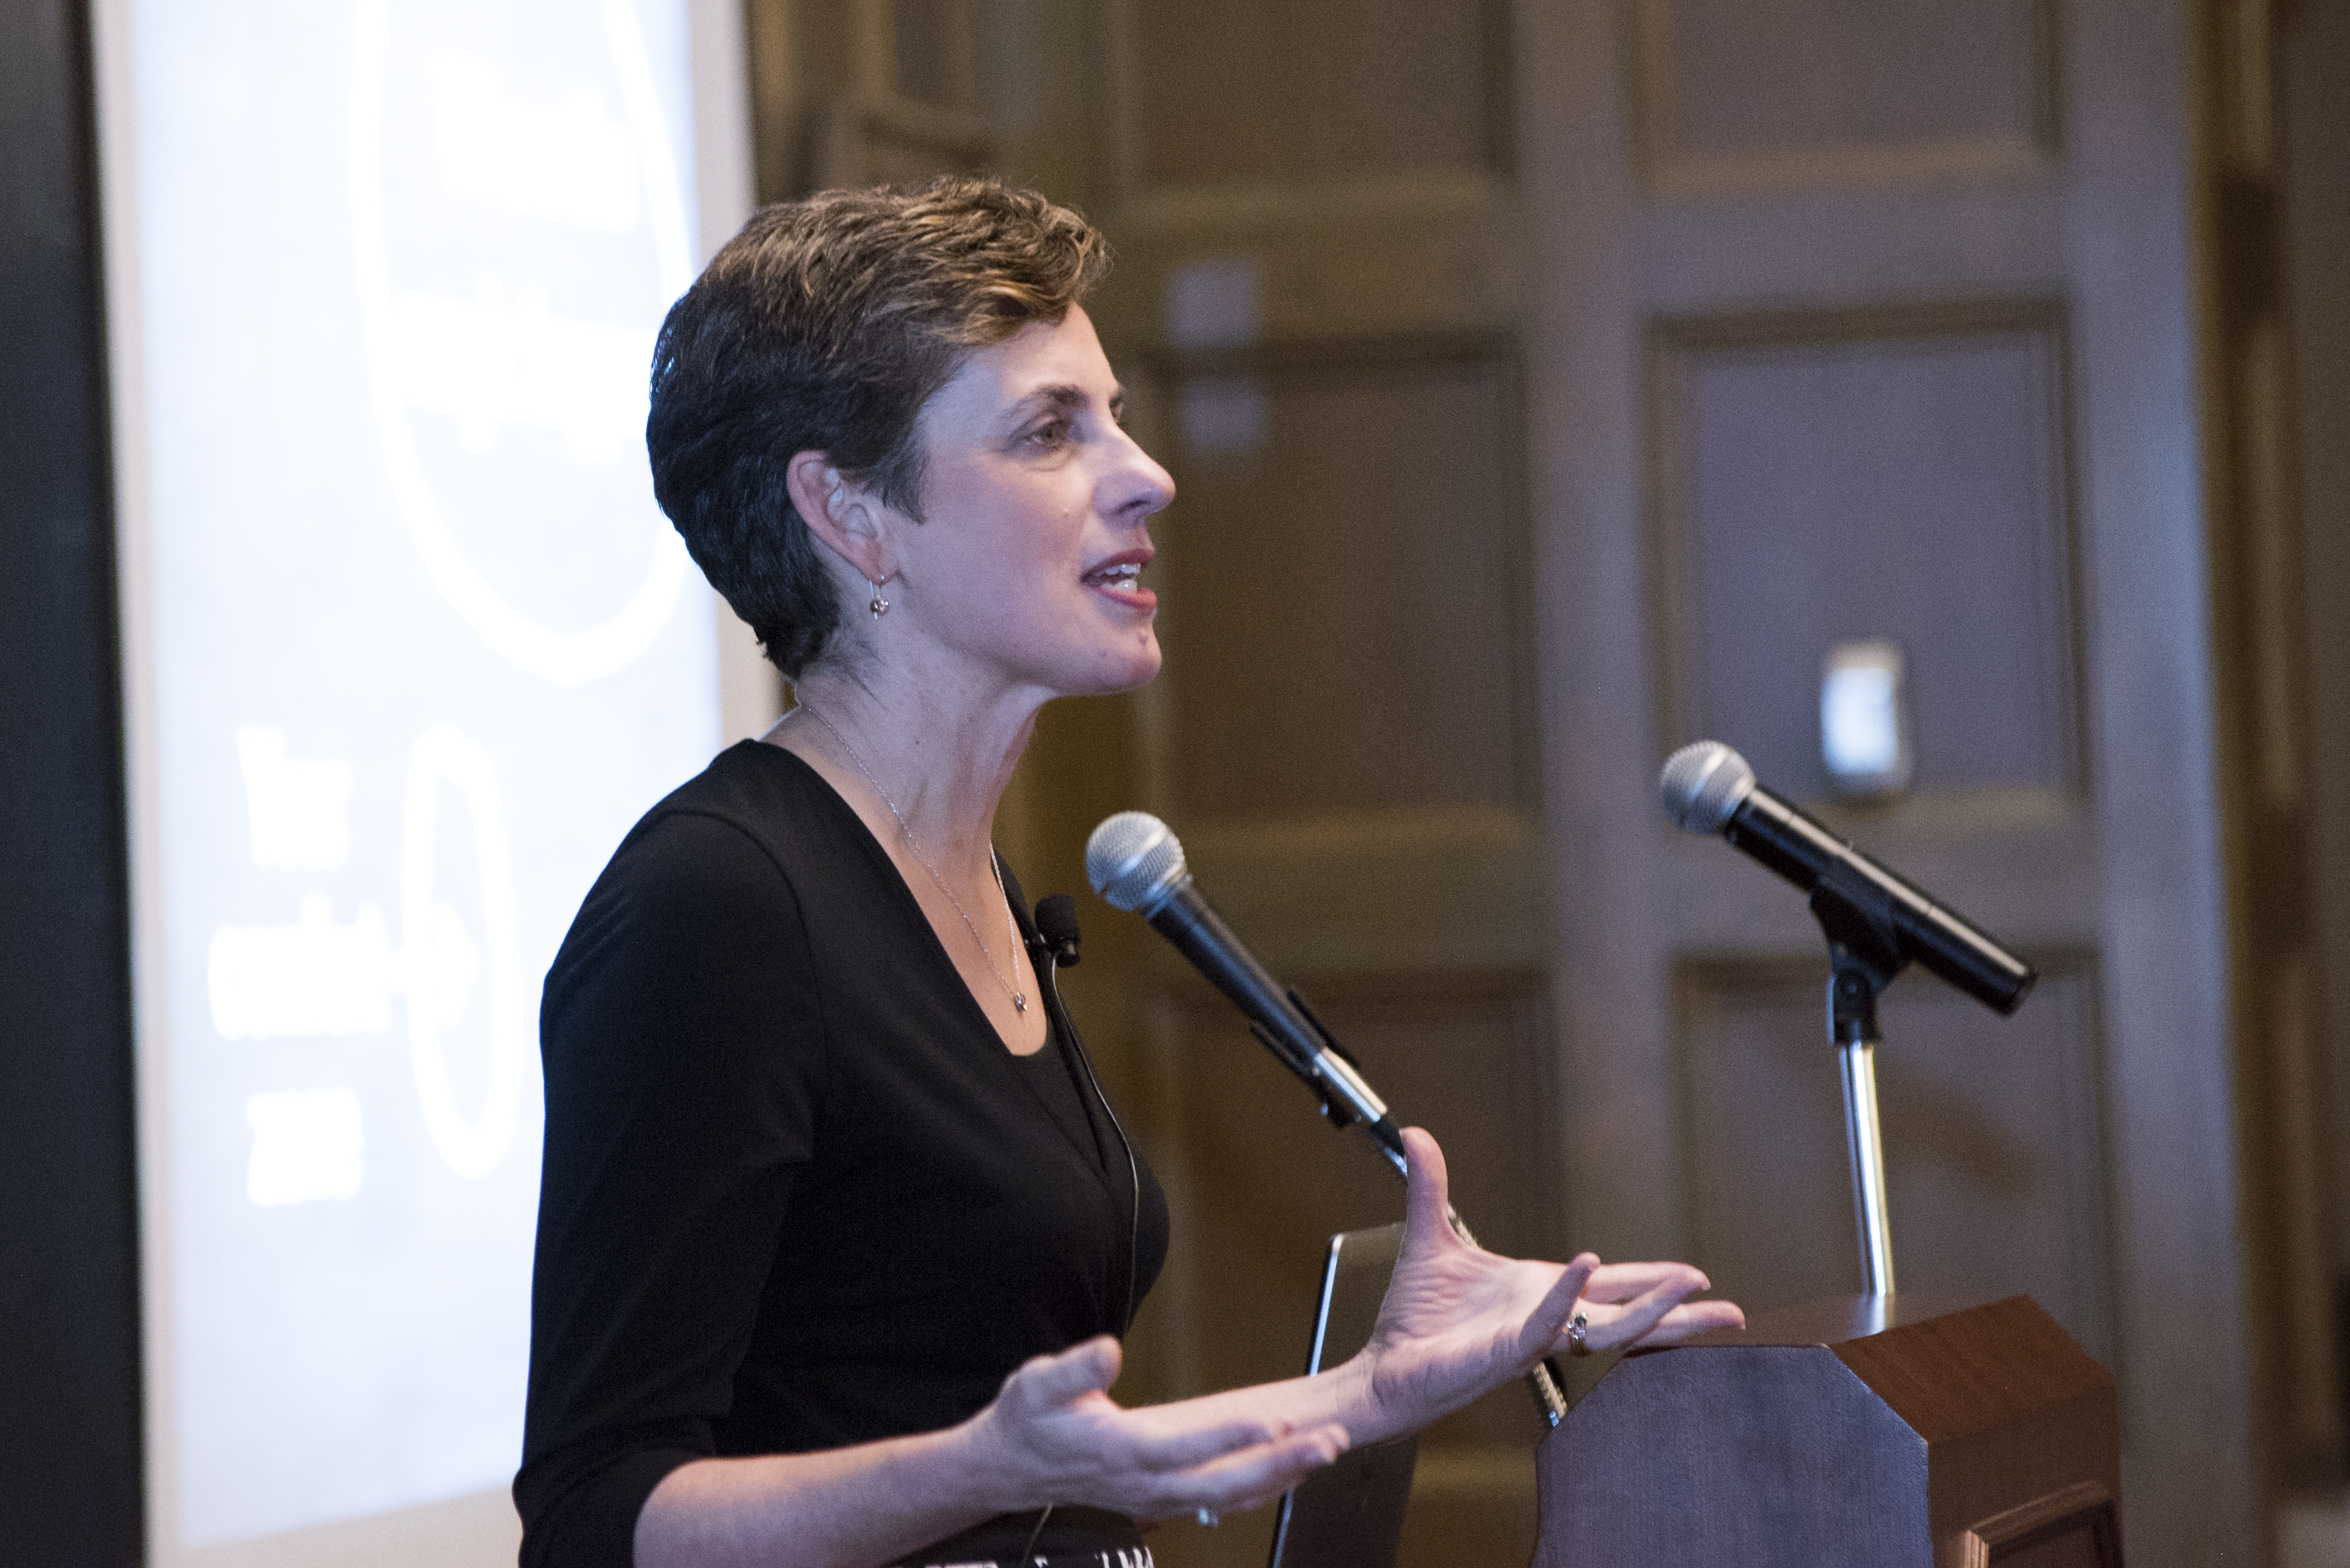 Karen delivering the CEWiT Summit Keynote at Indiana University in February 2017